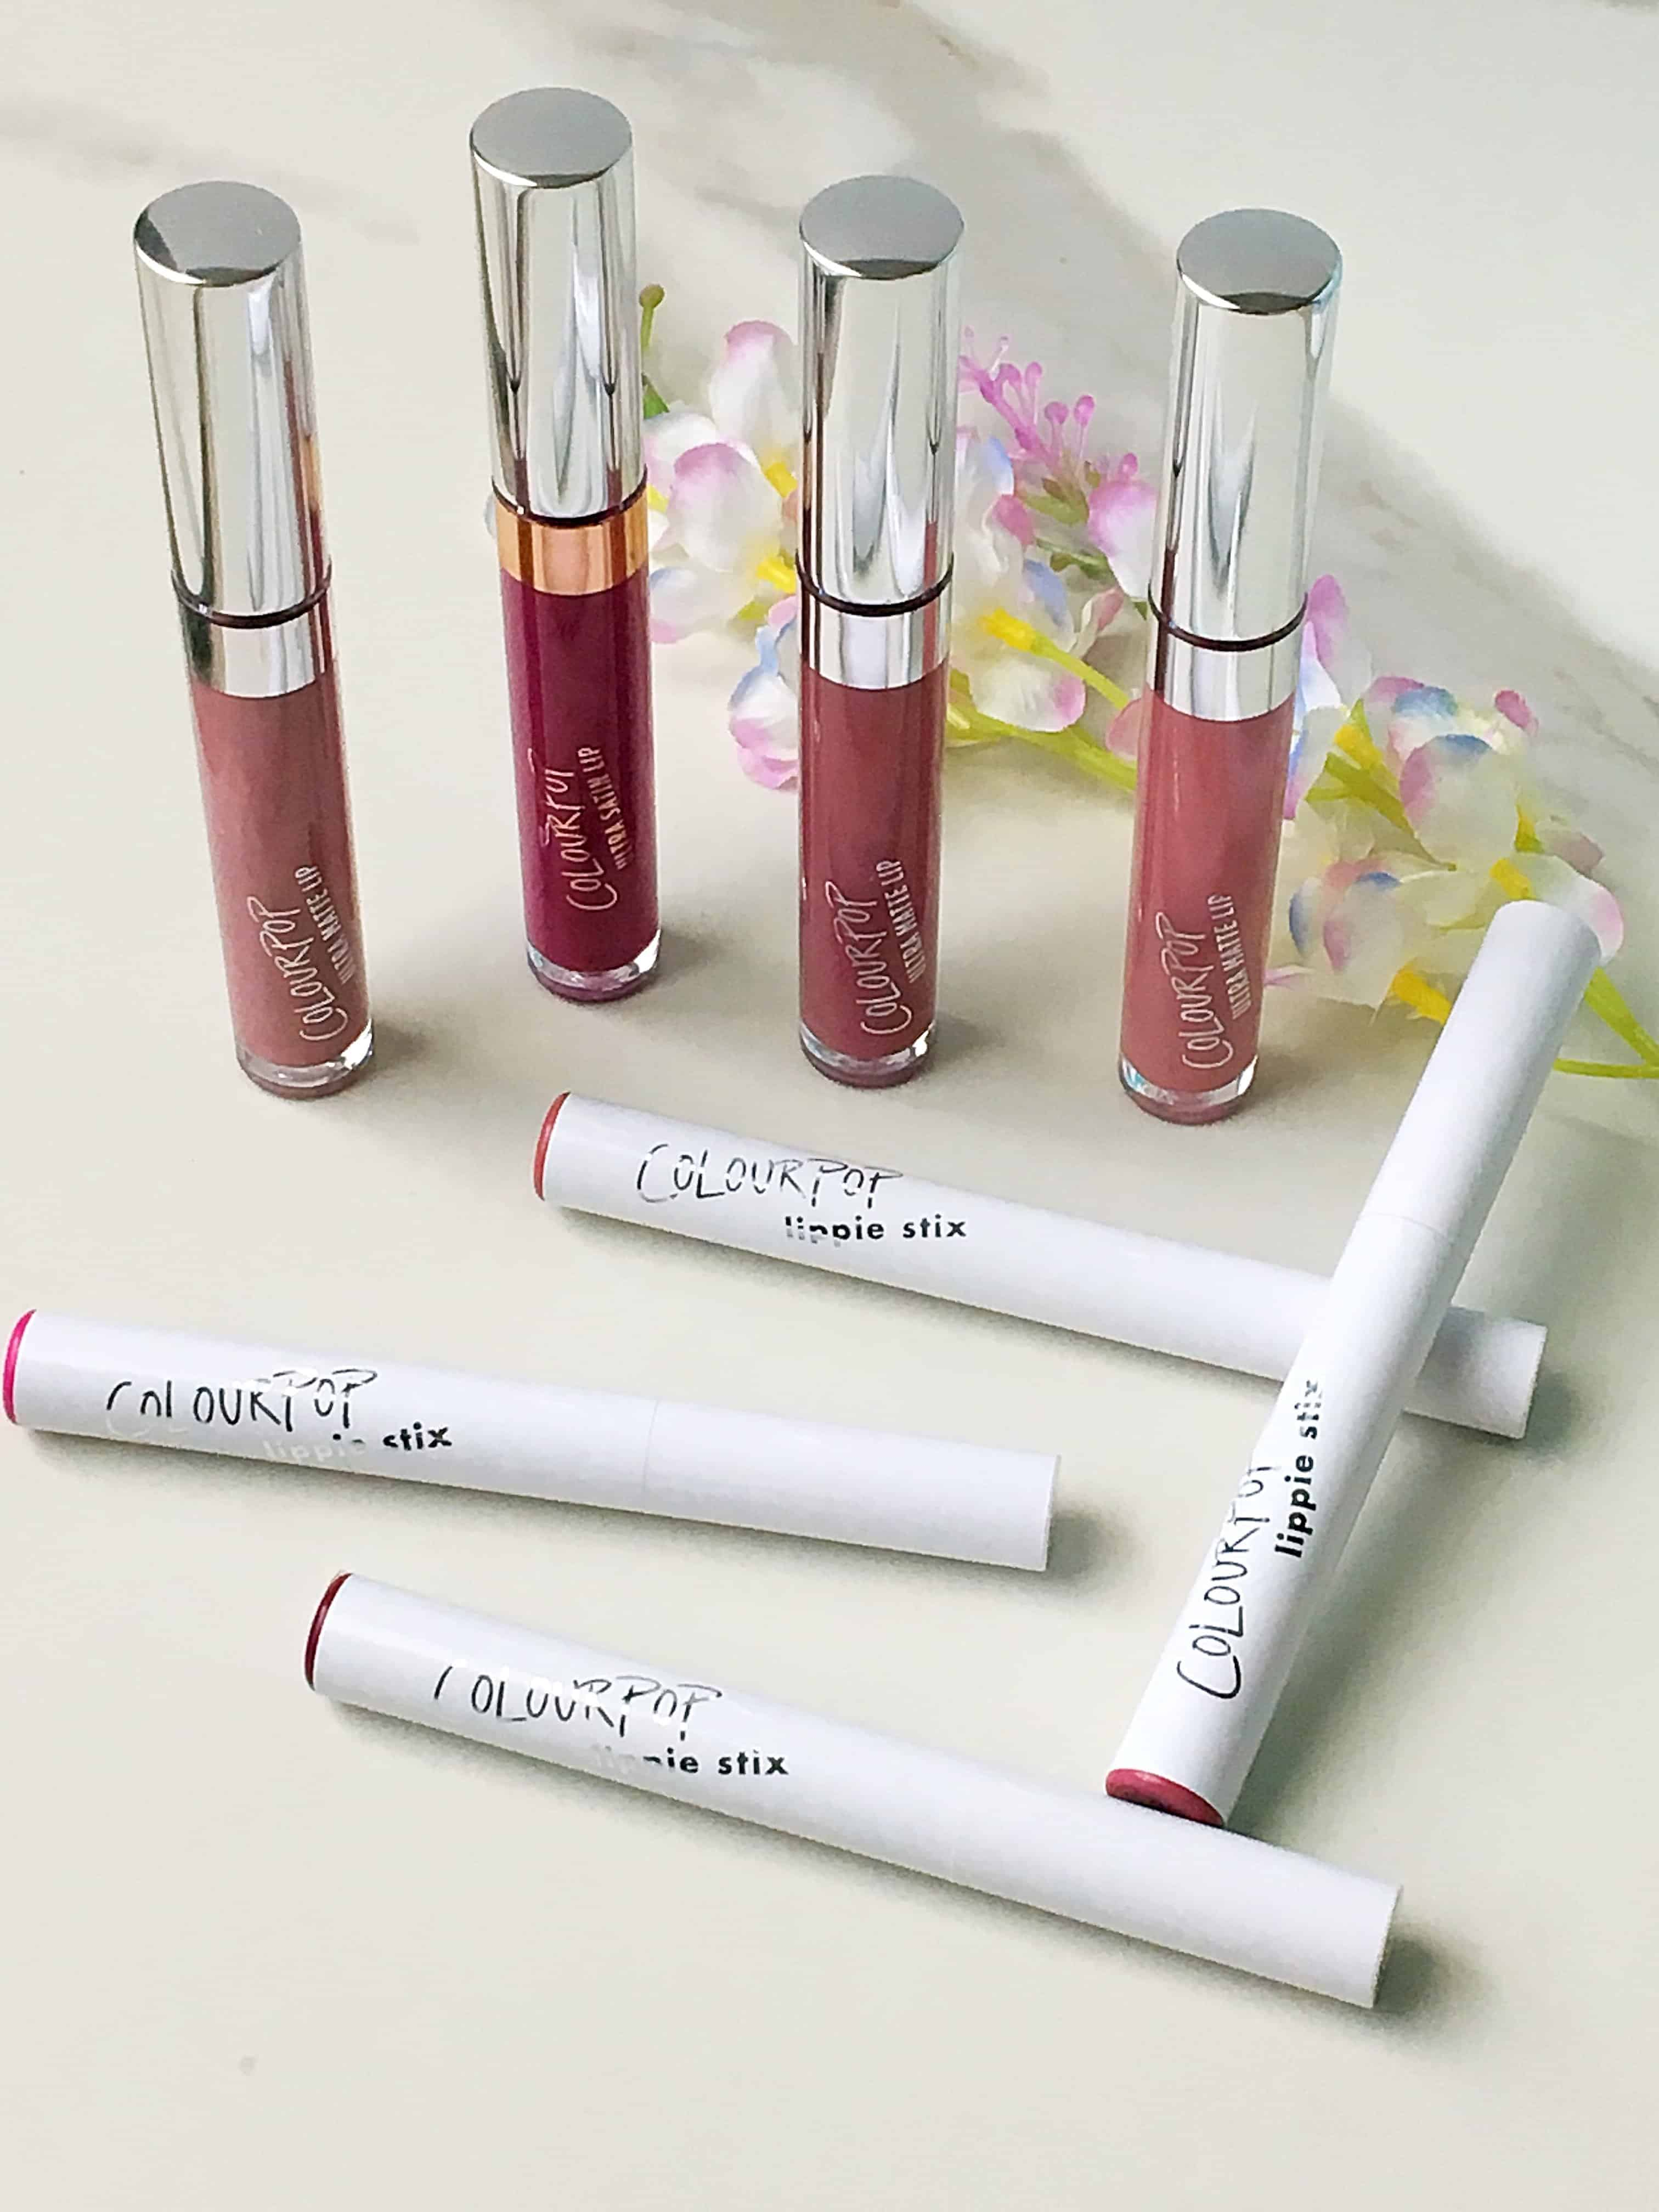 Best ColourPop Lipsticks- Review + Swatches: Today I'm sharing the Best ColourPop Lipsticks, which are beautiful, affordable, and every lipstick lover needs in their makeup collection!Sharing a full review and swatches of ColourPop liquid lipsticks and lippie stix and my favorite shade recommendations.